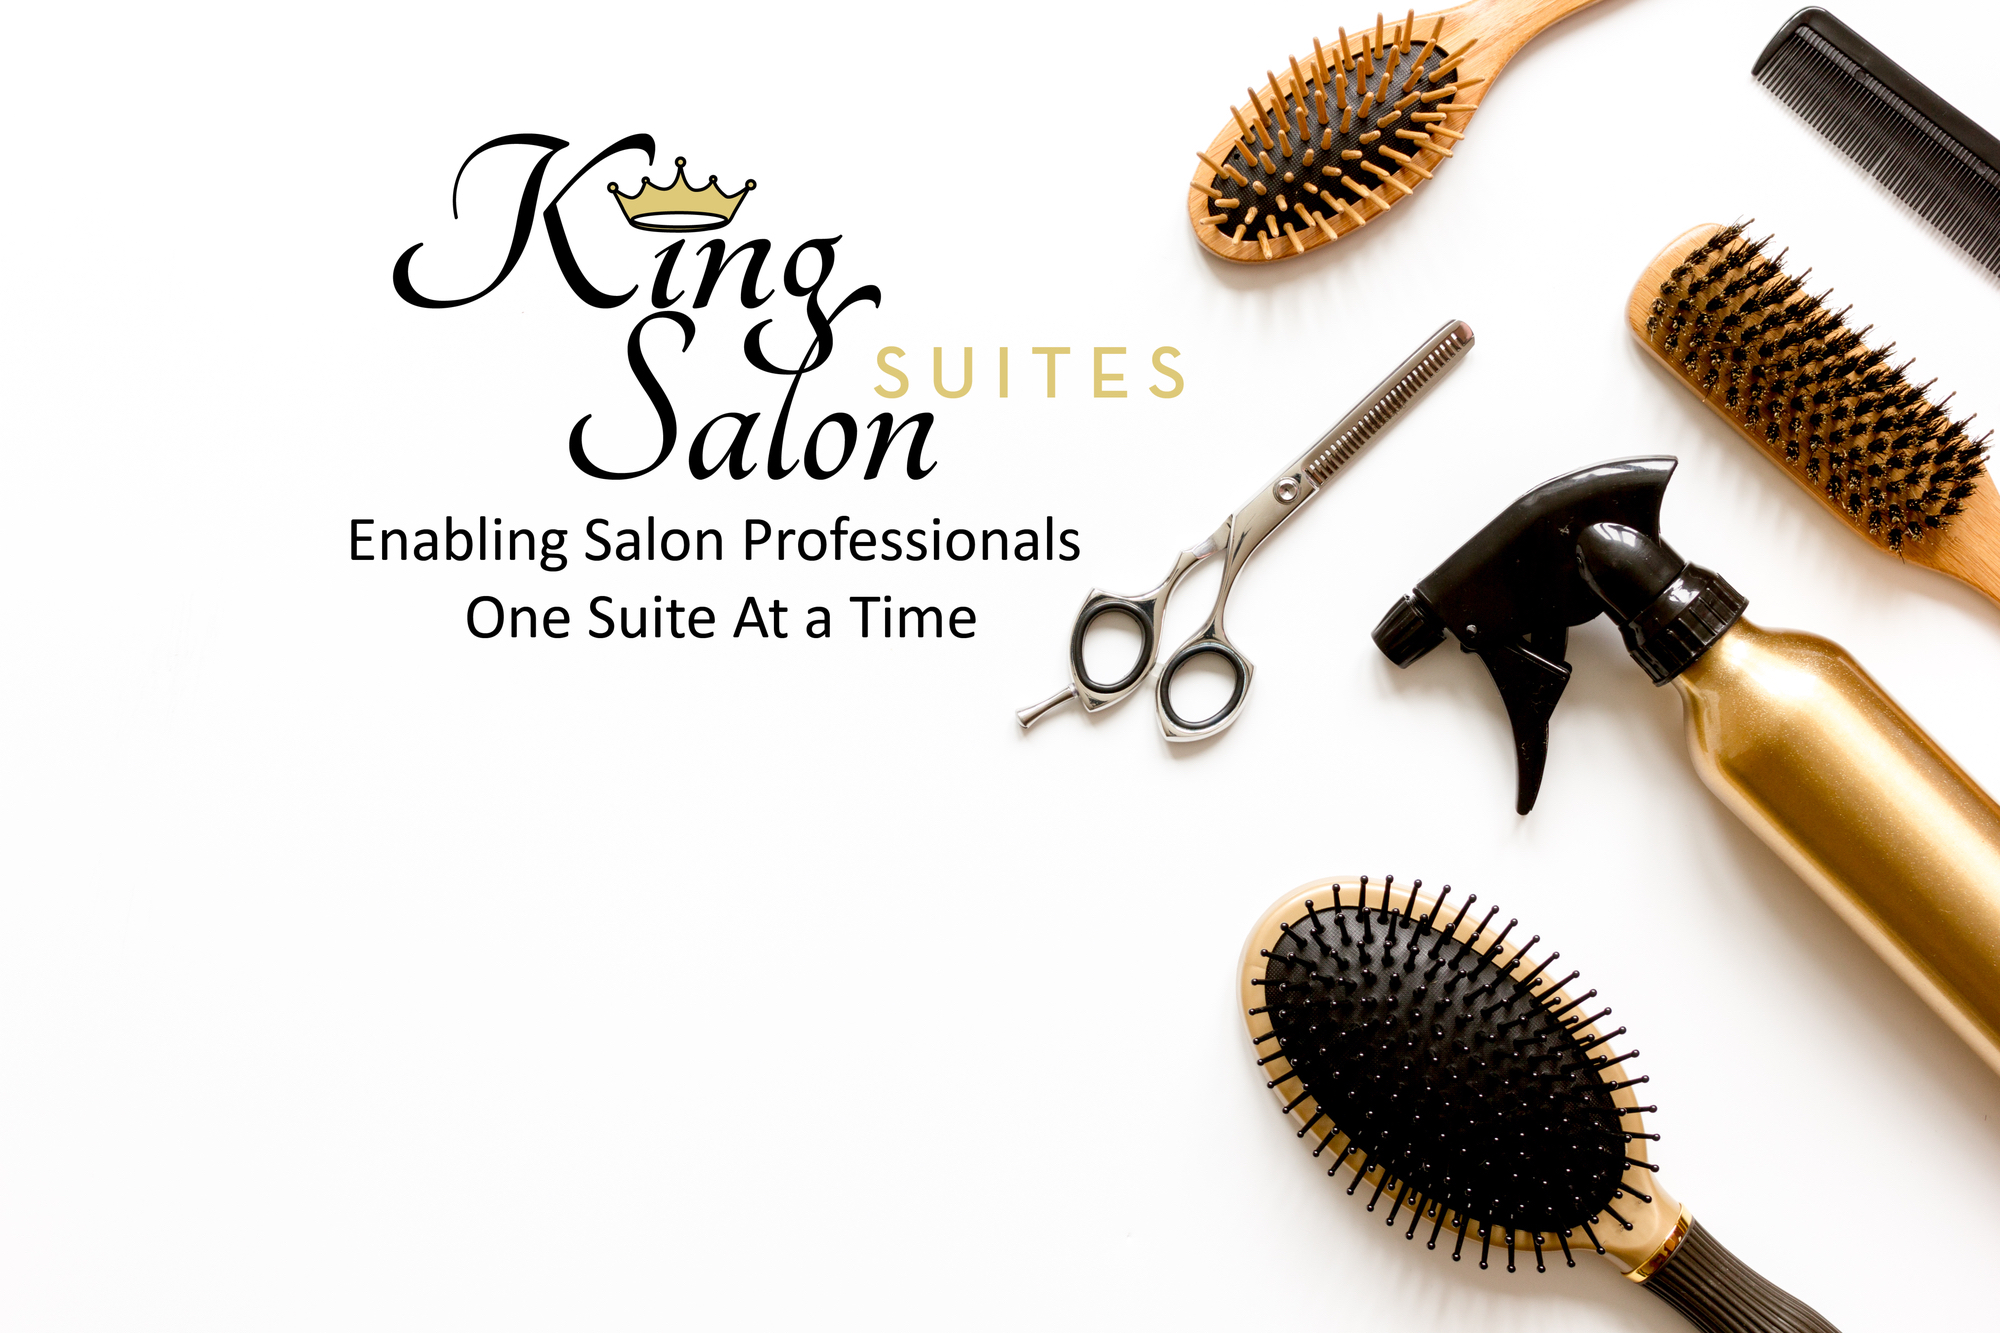 King Salon Suites